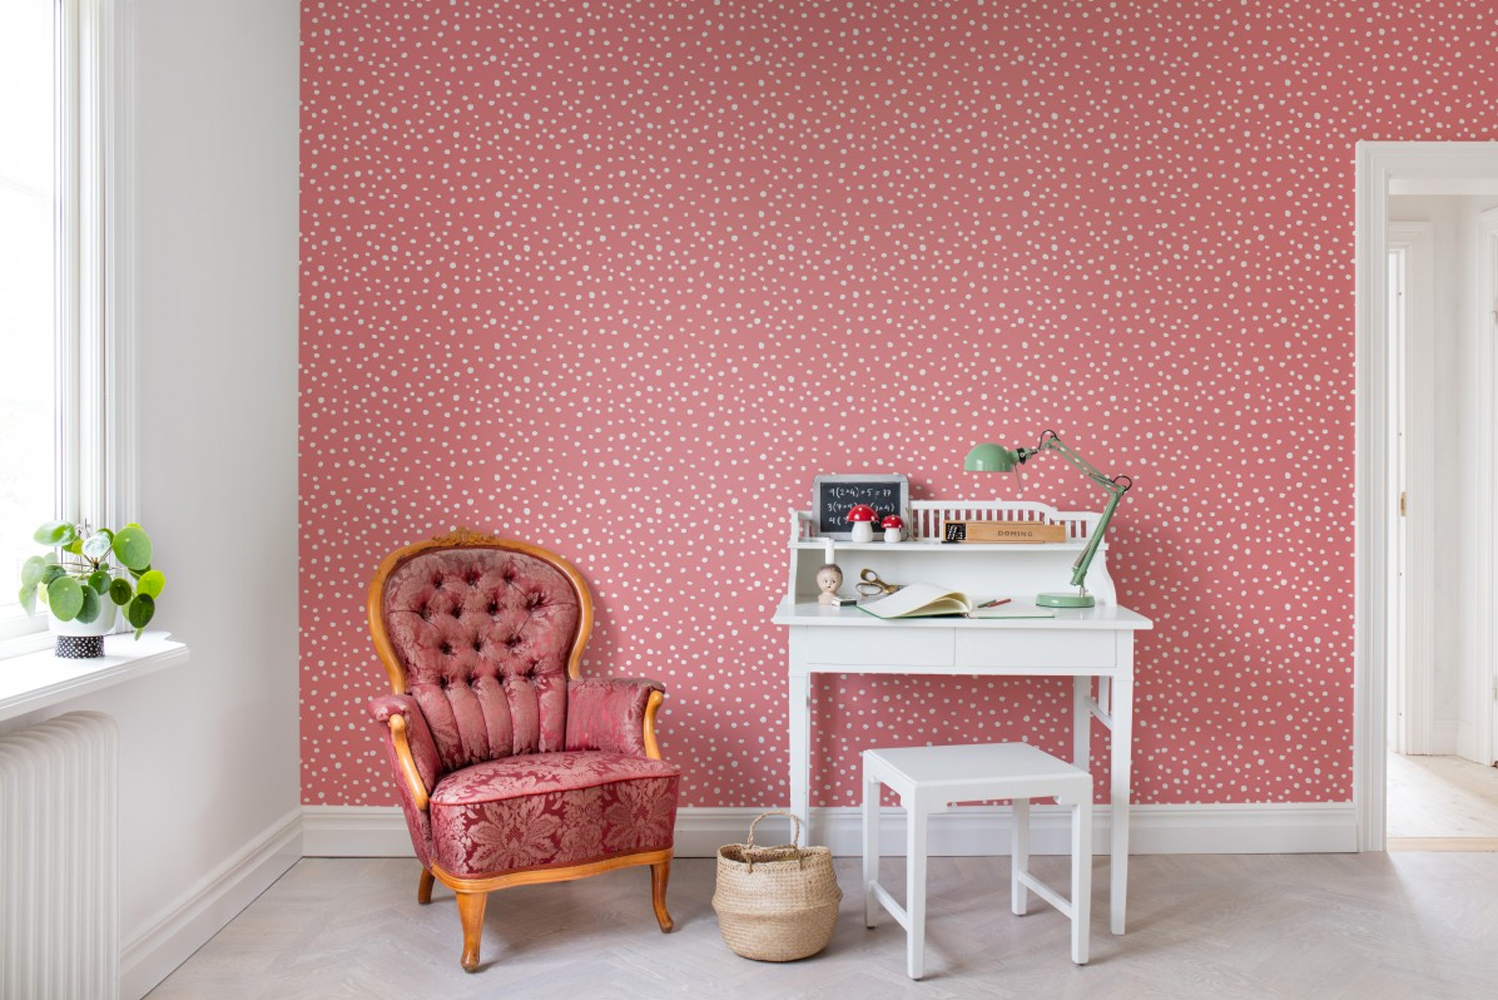 Introducing Nostalgia Anew, a new wallpaper collection from Rebel Walls.